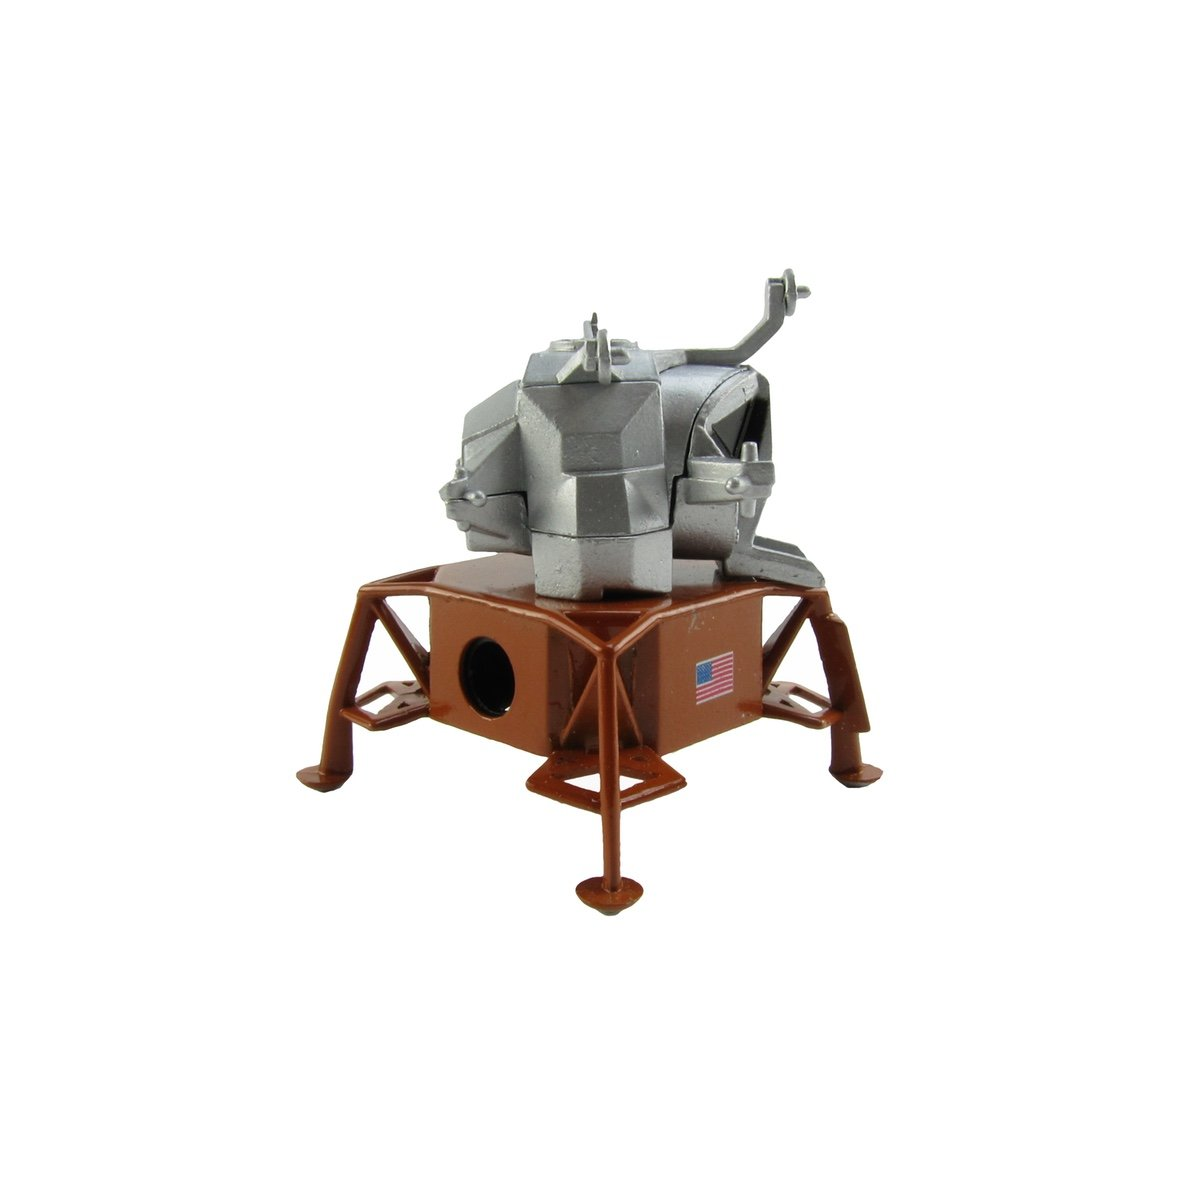 Apollo 16 Lunar Lander Module Die Cast Pencil Sharpener